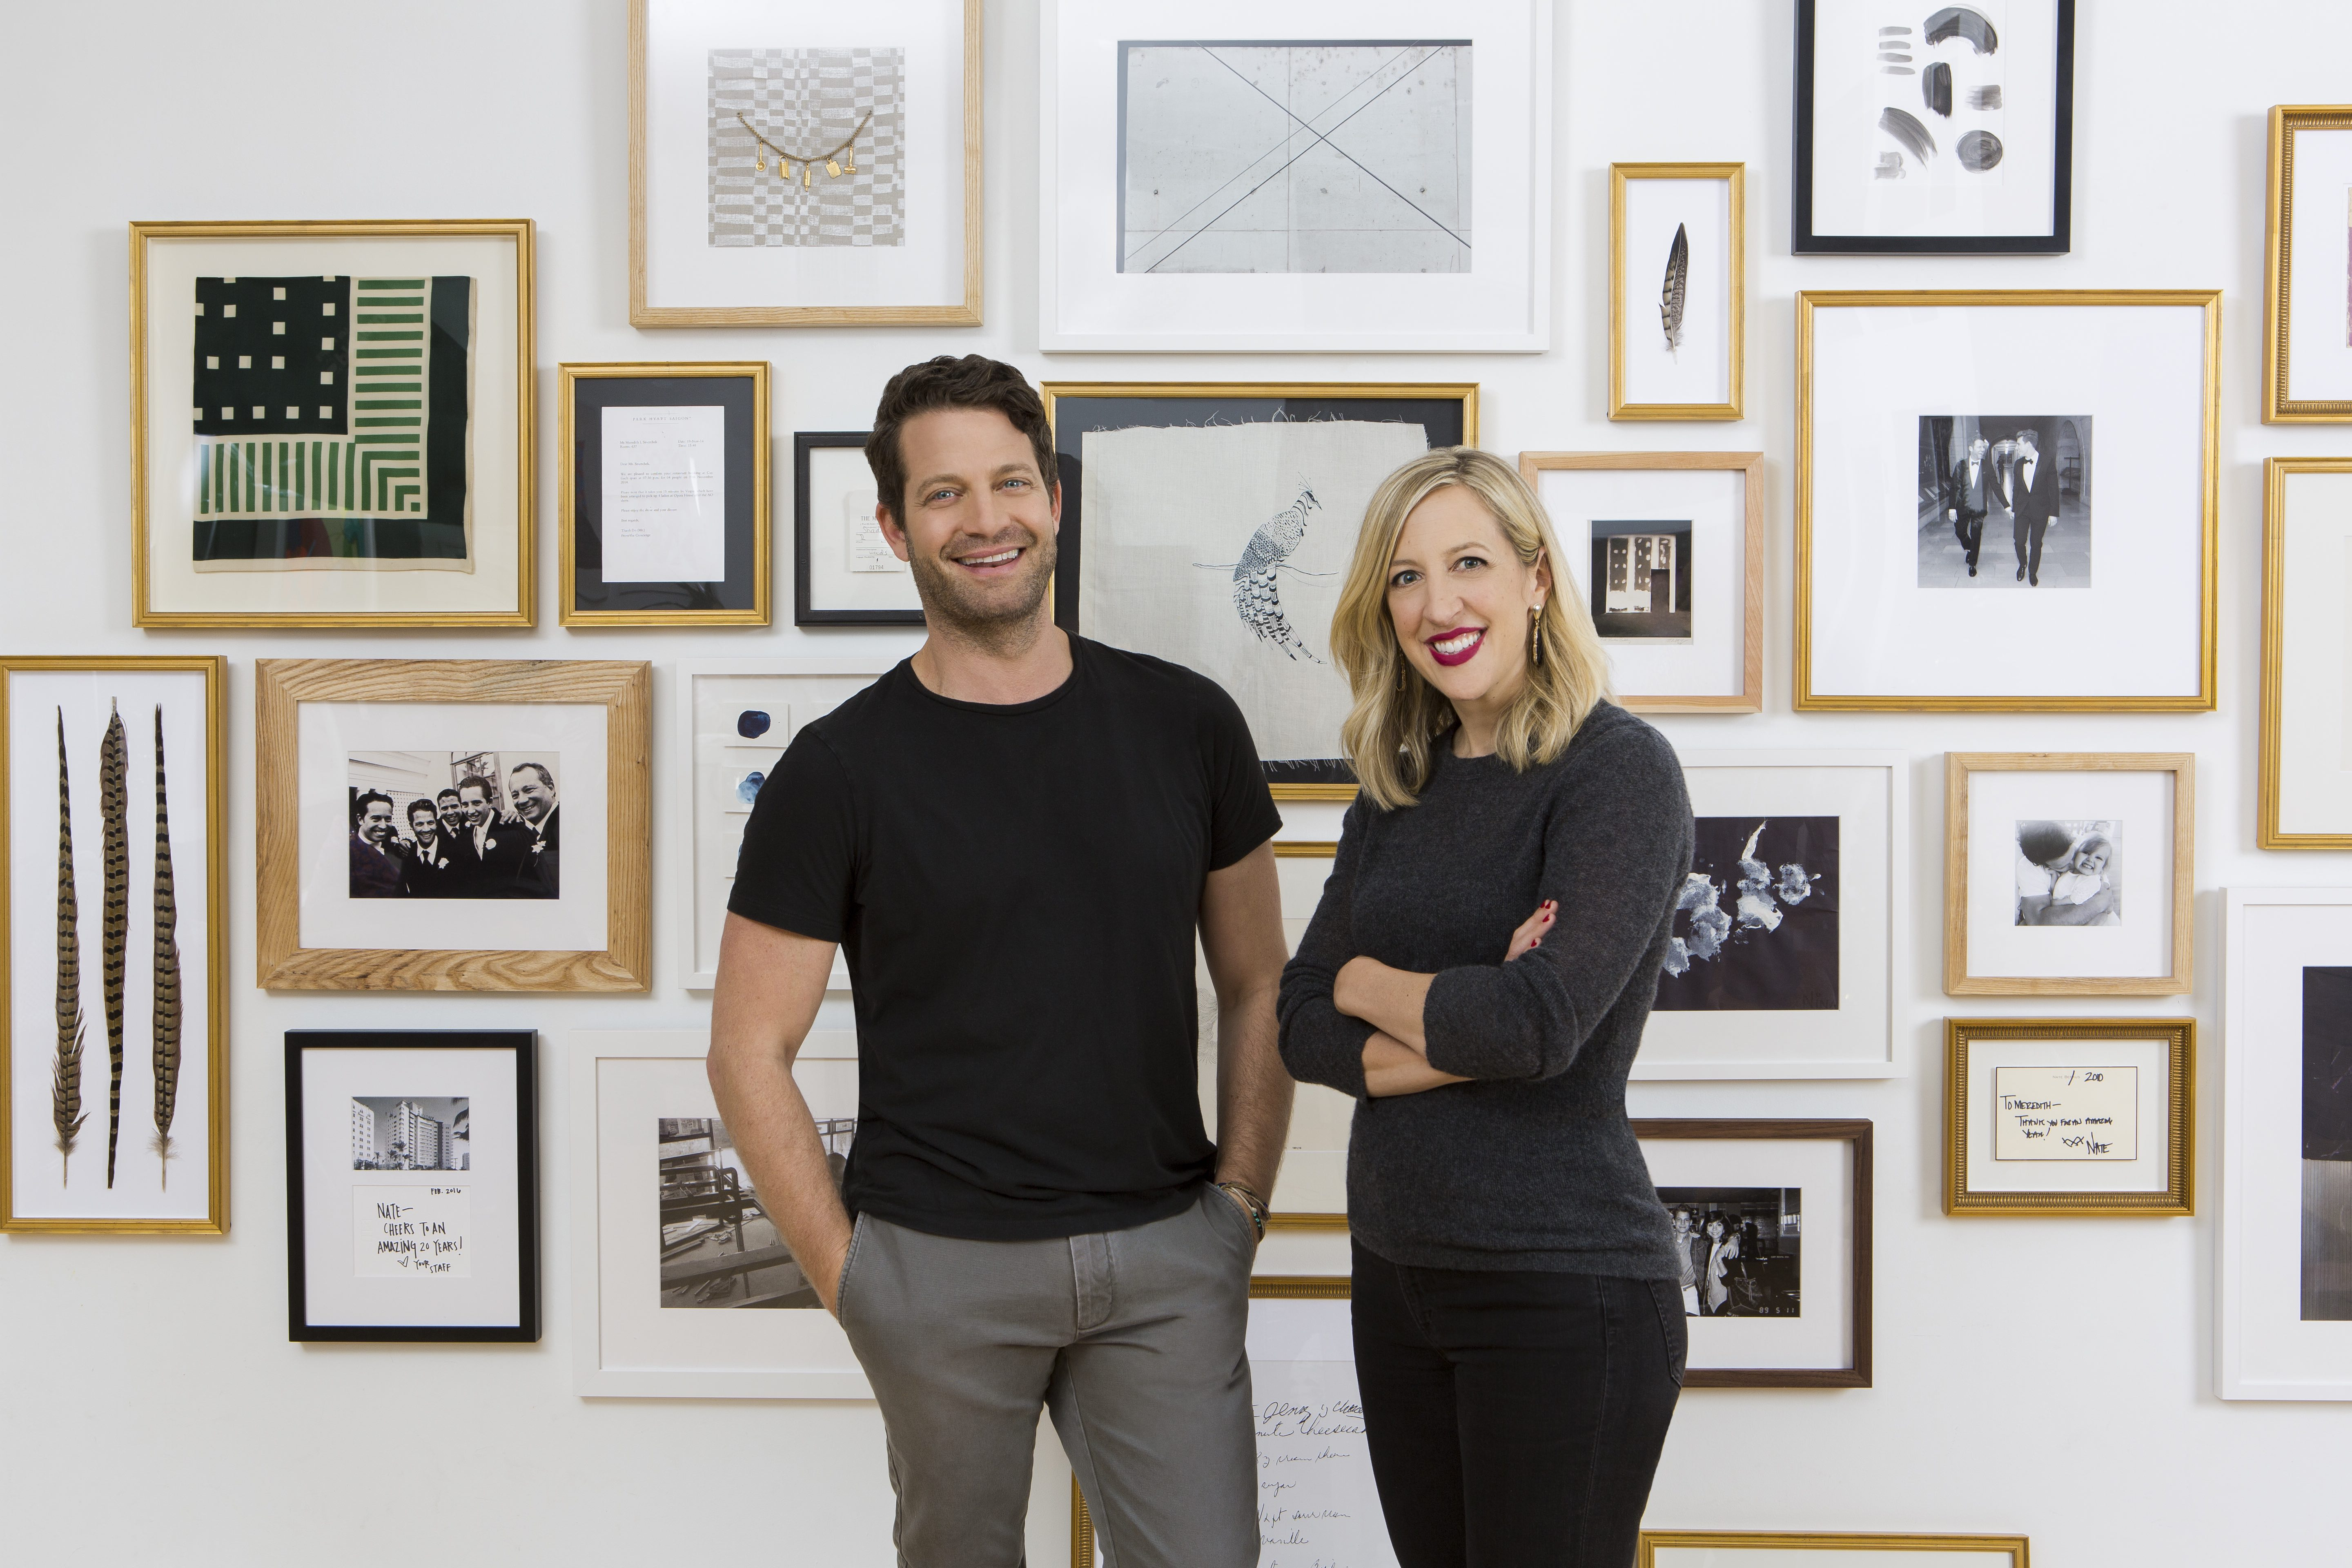 Susan Tynan and Nate Berkus in front of floor to ceiling gallery wall with gold frames